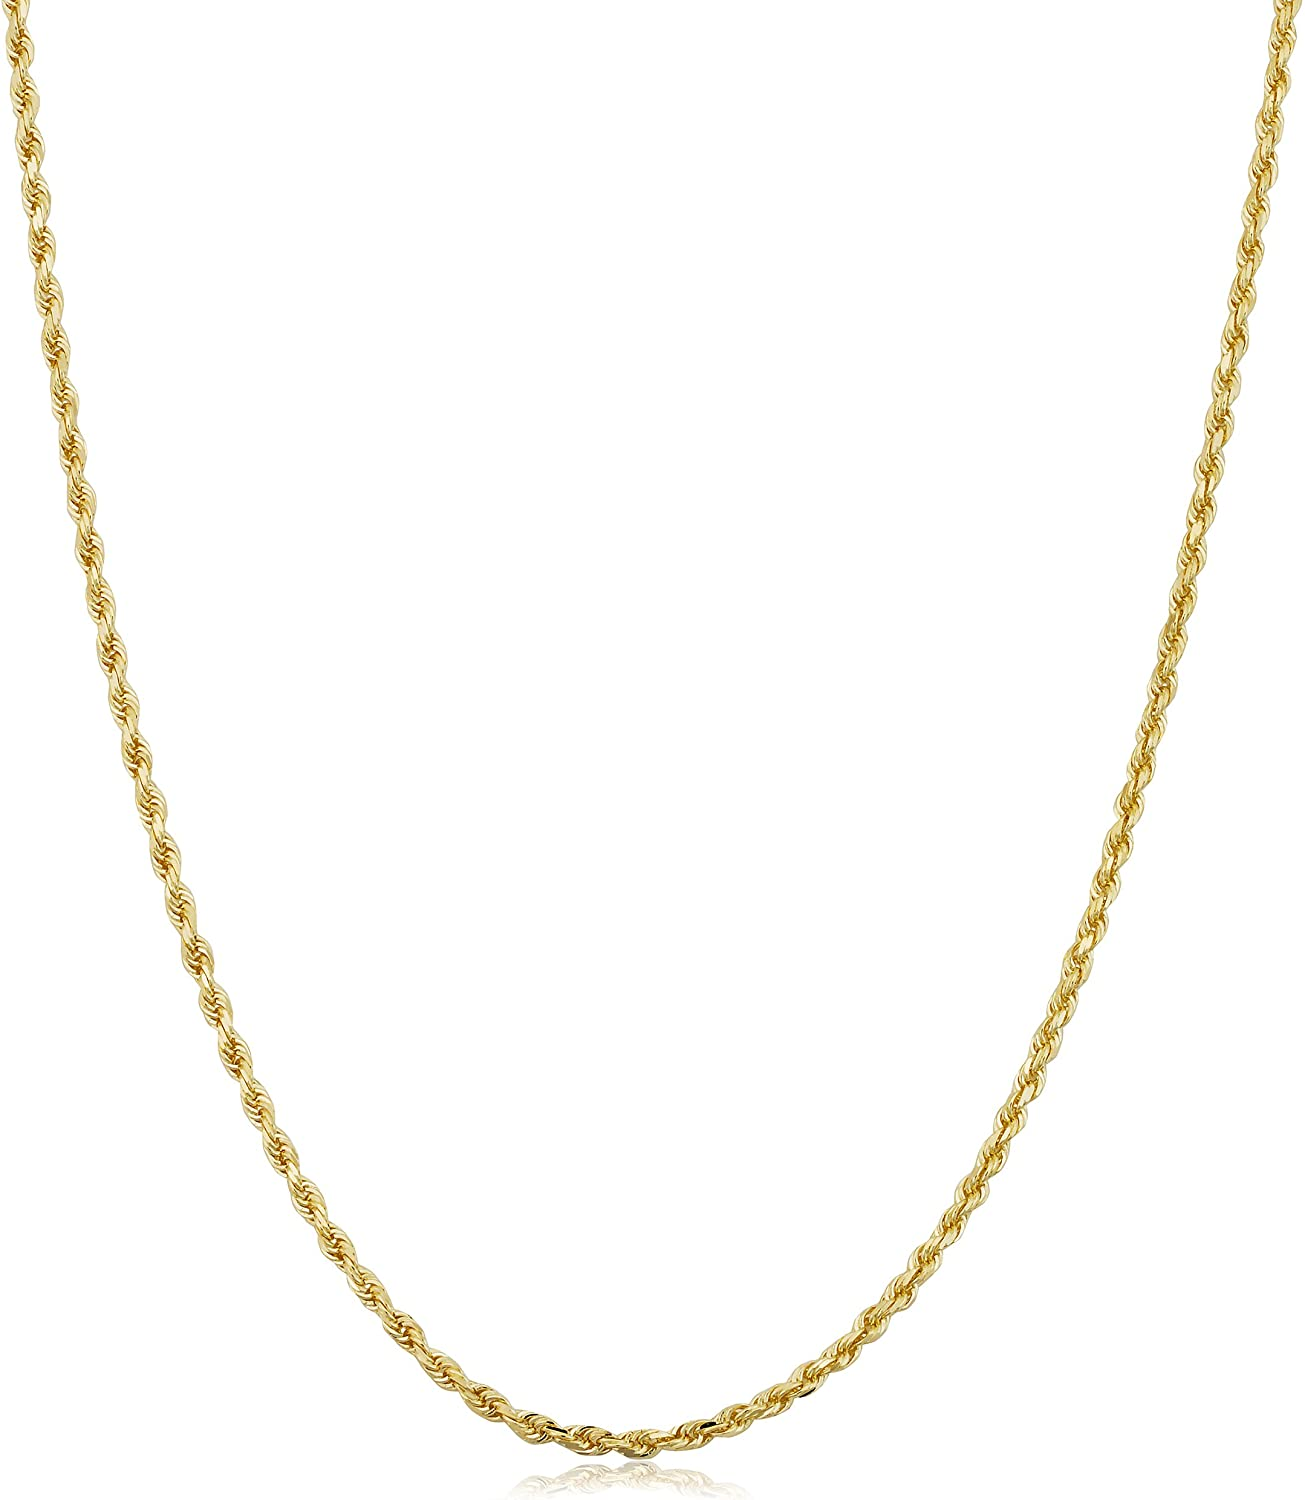 Kooljewelry 14k Yellow Gold 1.6 mm Rope Chain Necklace (14, 16, 18, 20, 22, 24 or 30 inch)